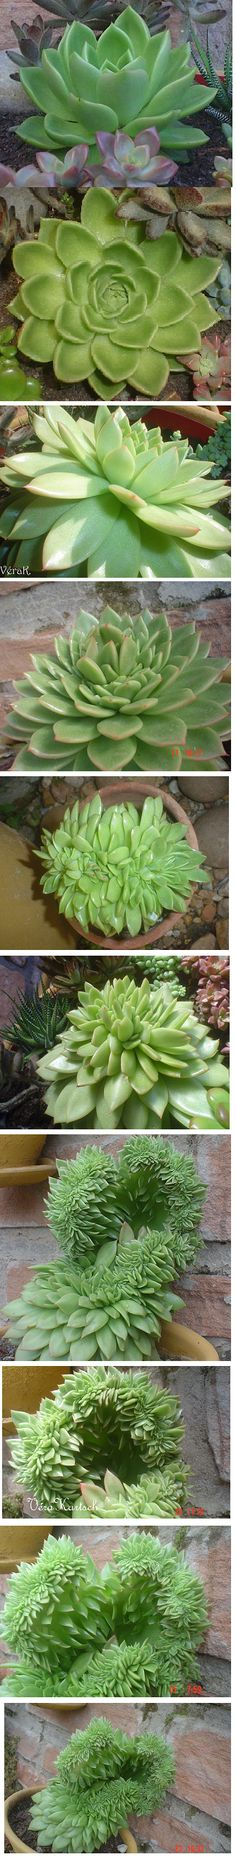 Echeveria agavoides cristate, a montage showing its transformation into the cristate form.